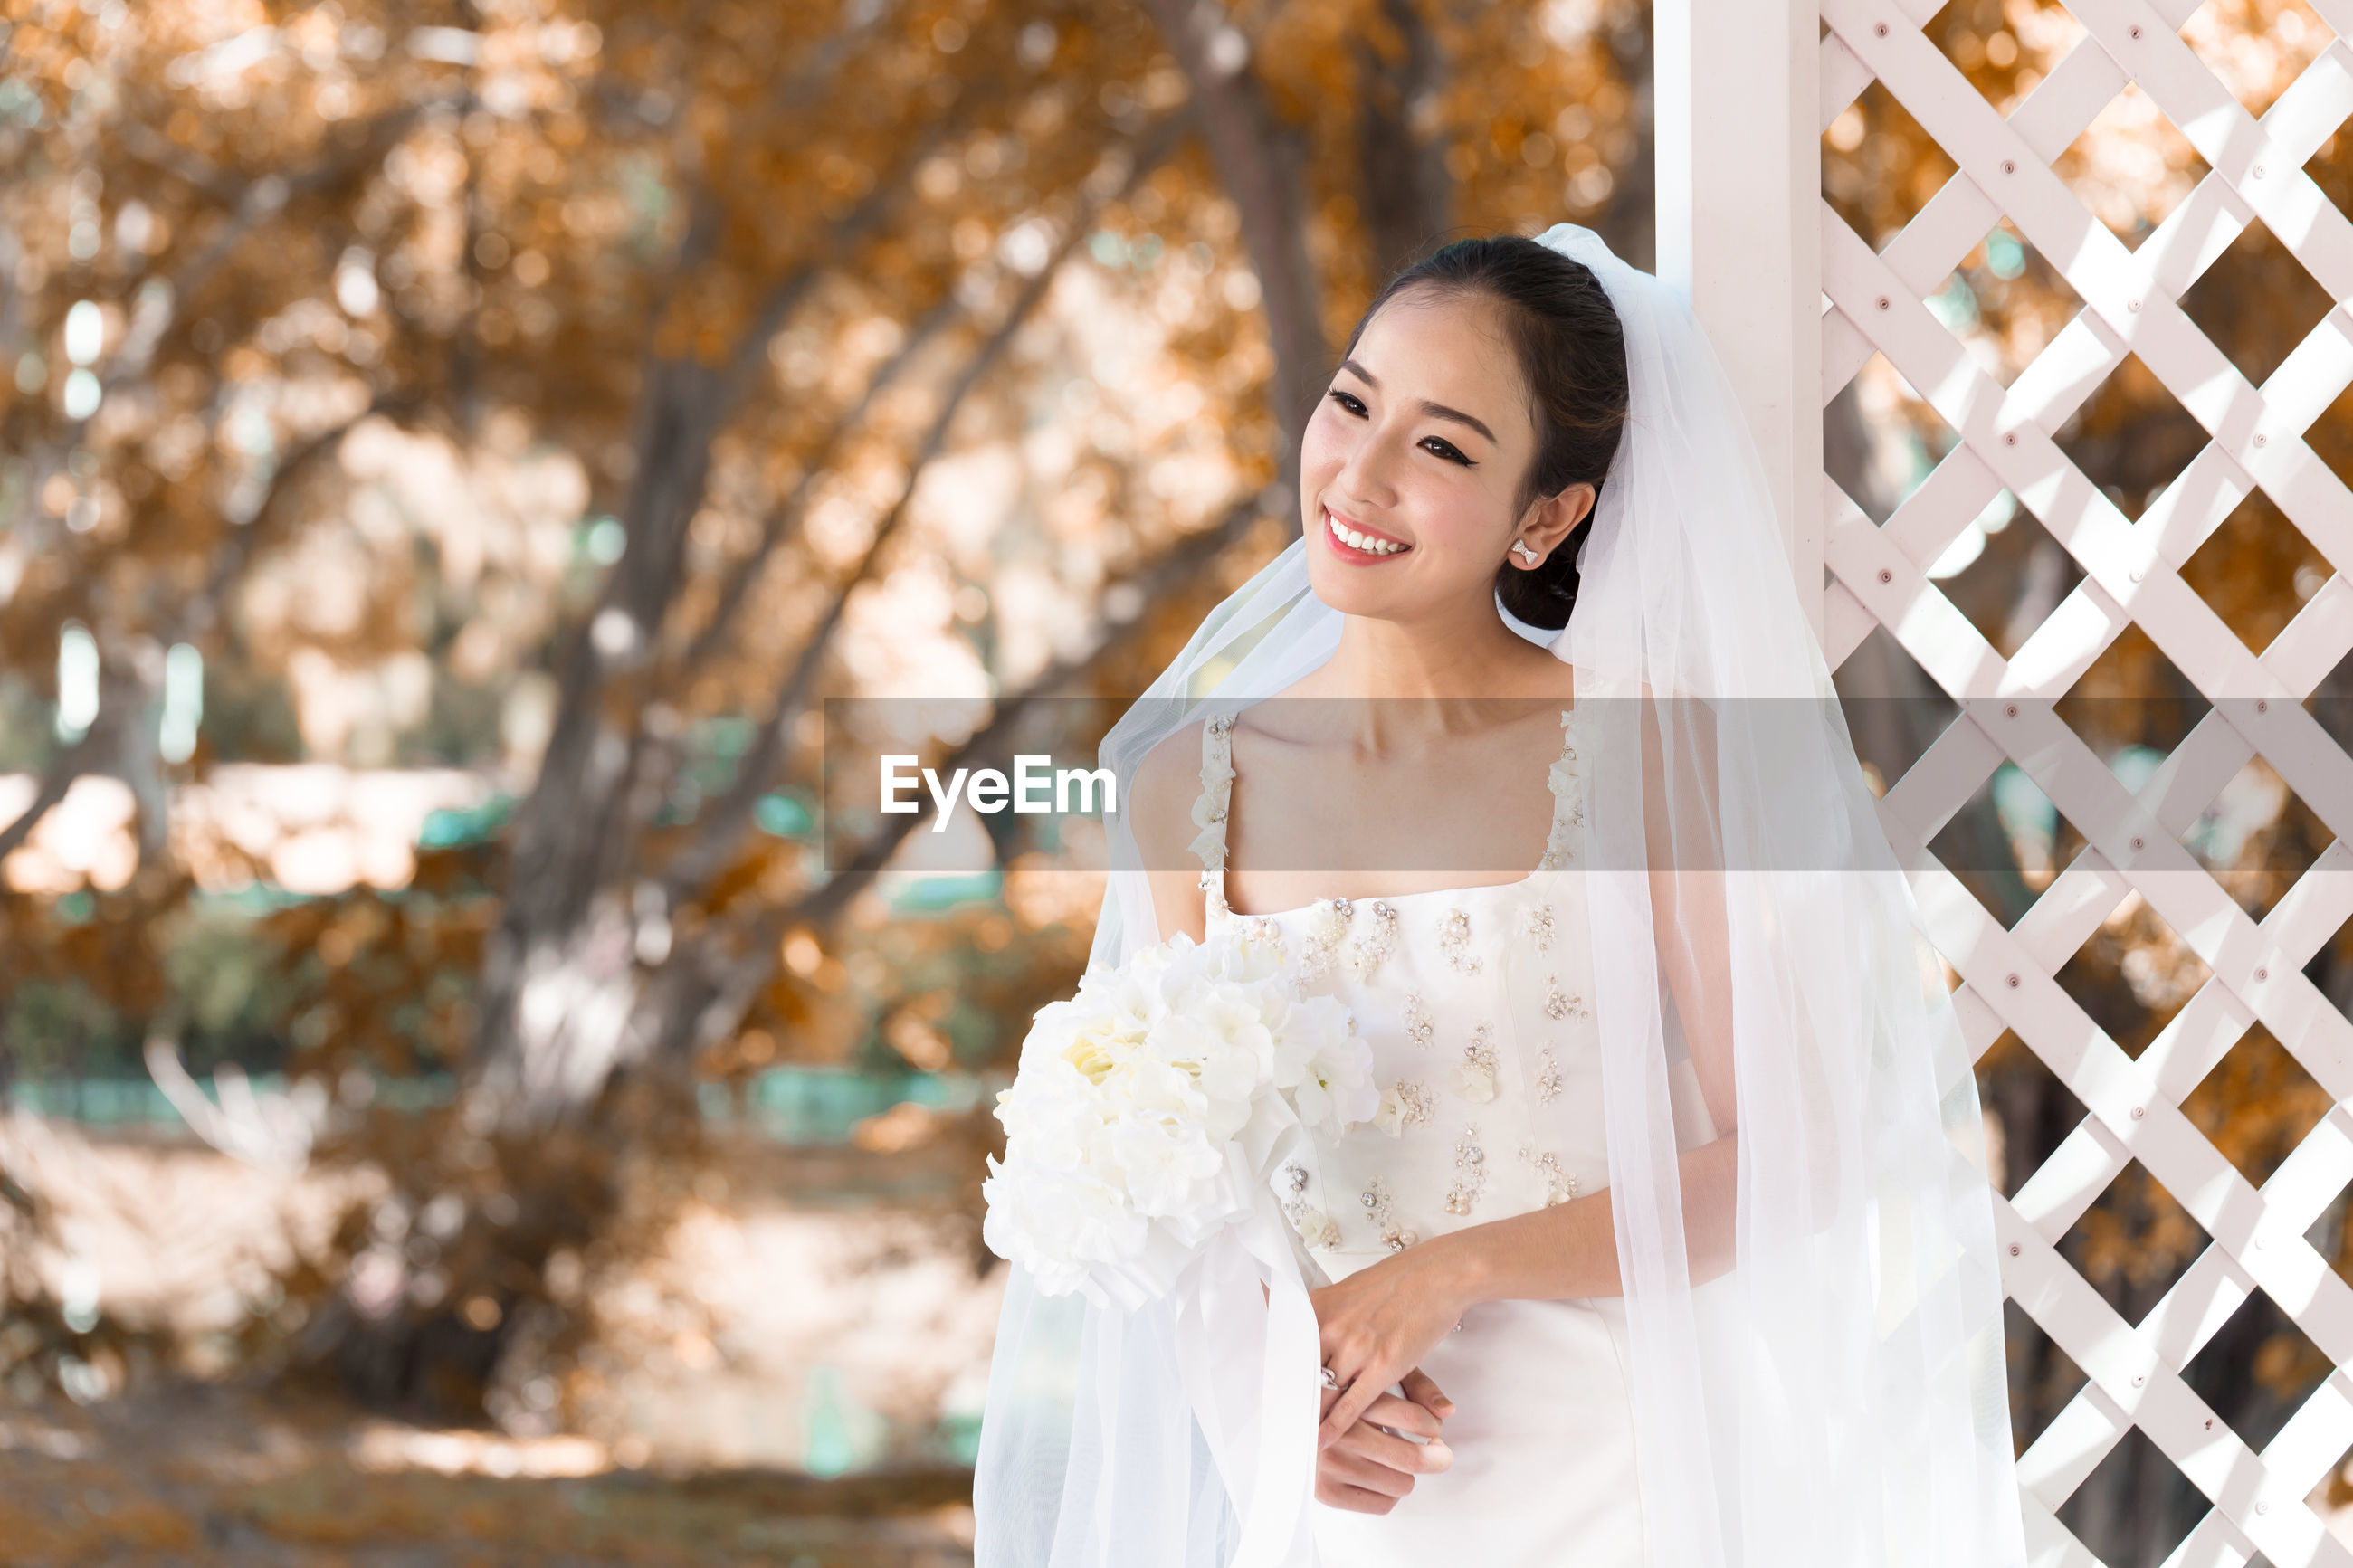 Smiling bride holding bouquet looking away